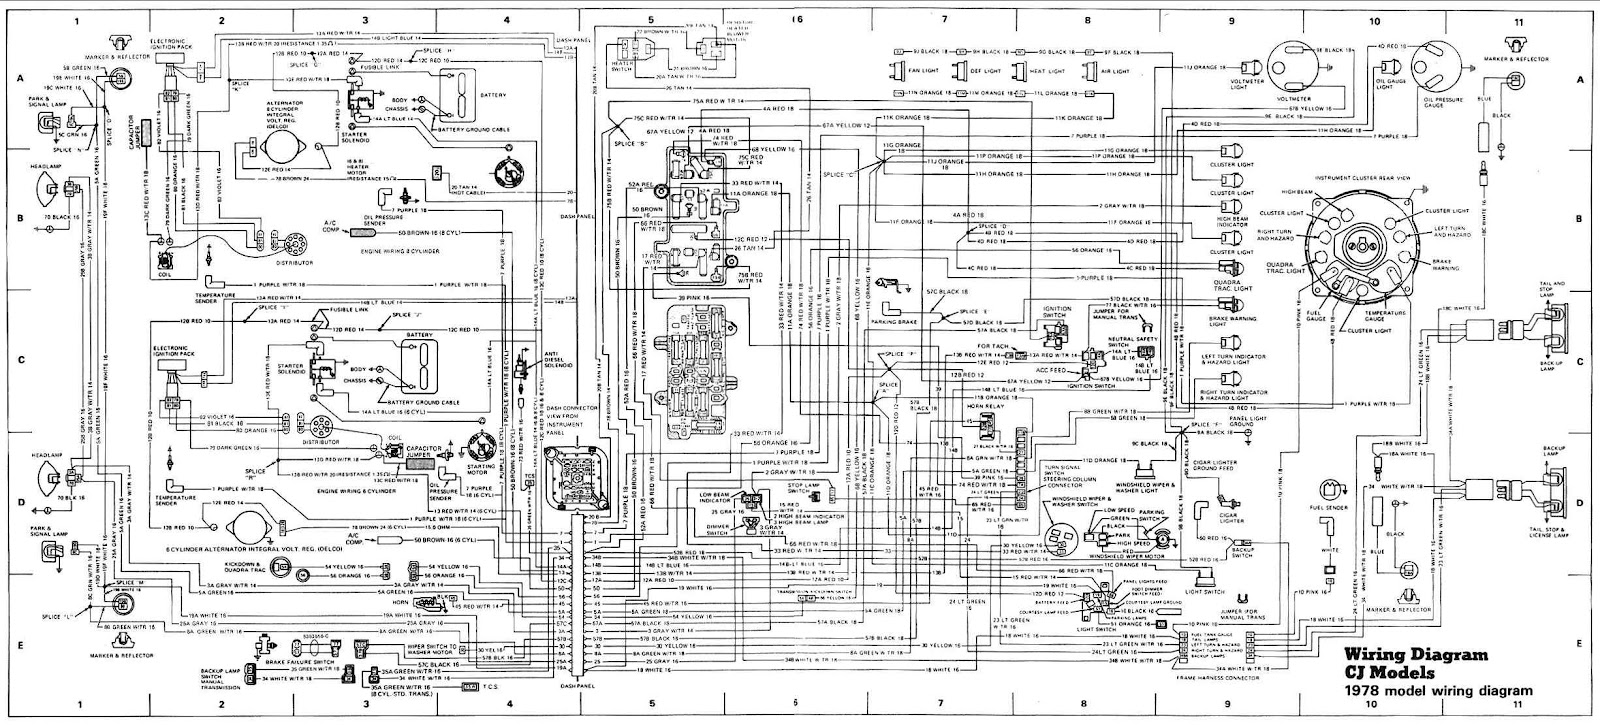 Jeep CJ Models 1978 Complete Electrical Wiring Diagram jeep stereo wiring diagram jeep free wiring diagrams 2003 jeep liberty radio wiring diagram at n-0.co